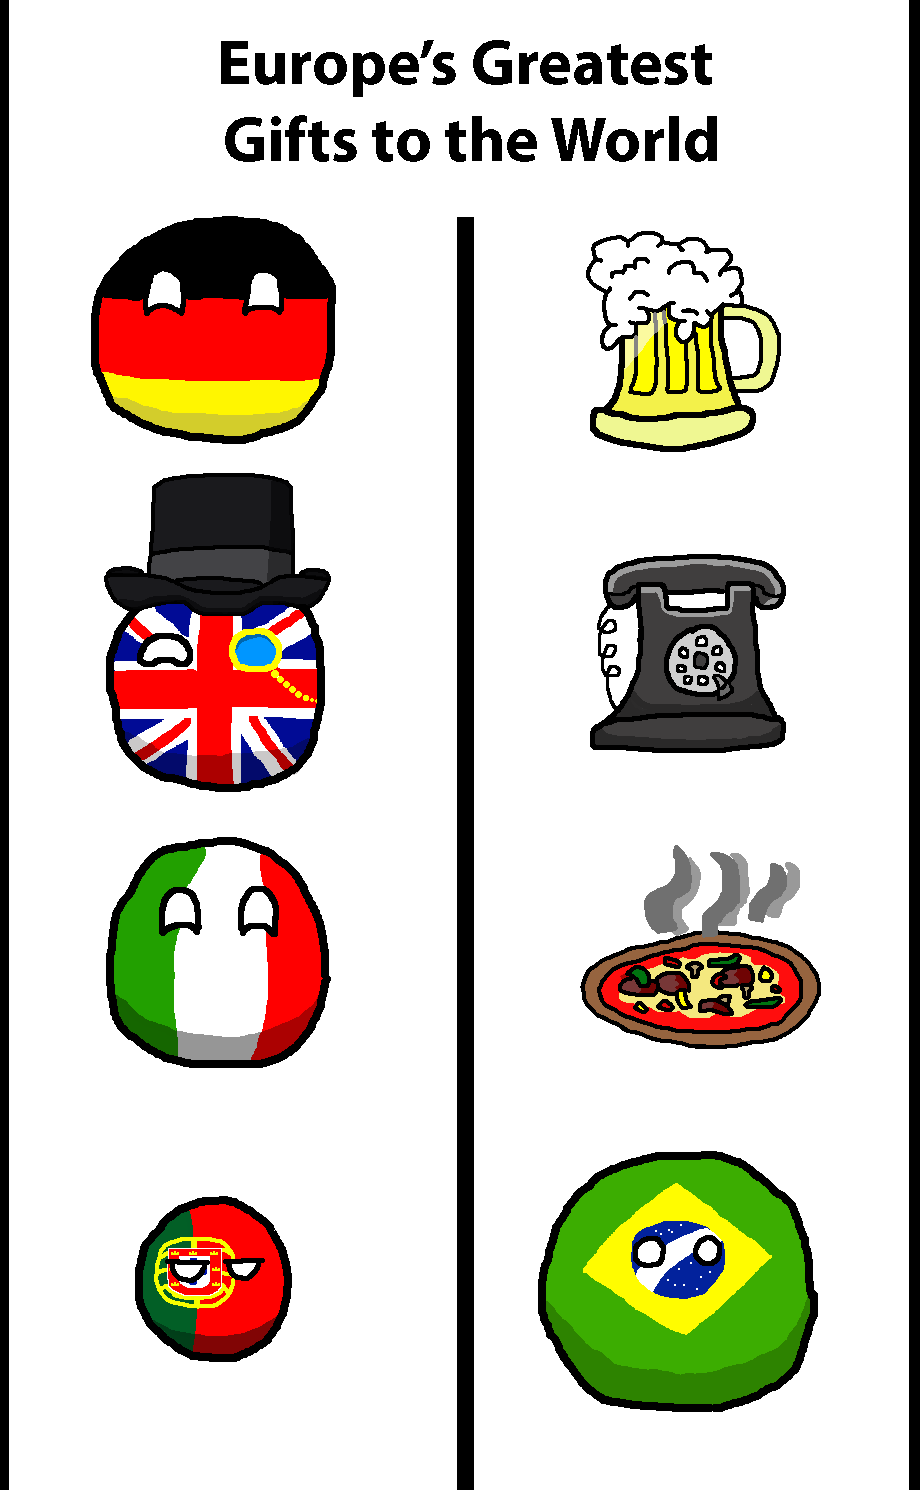 Europe's Gifts to the World ( Germany, UK, Italy, Portugal, Brazil ) by Theirishisraeli  #polandball #countryball